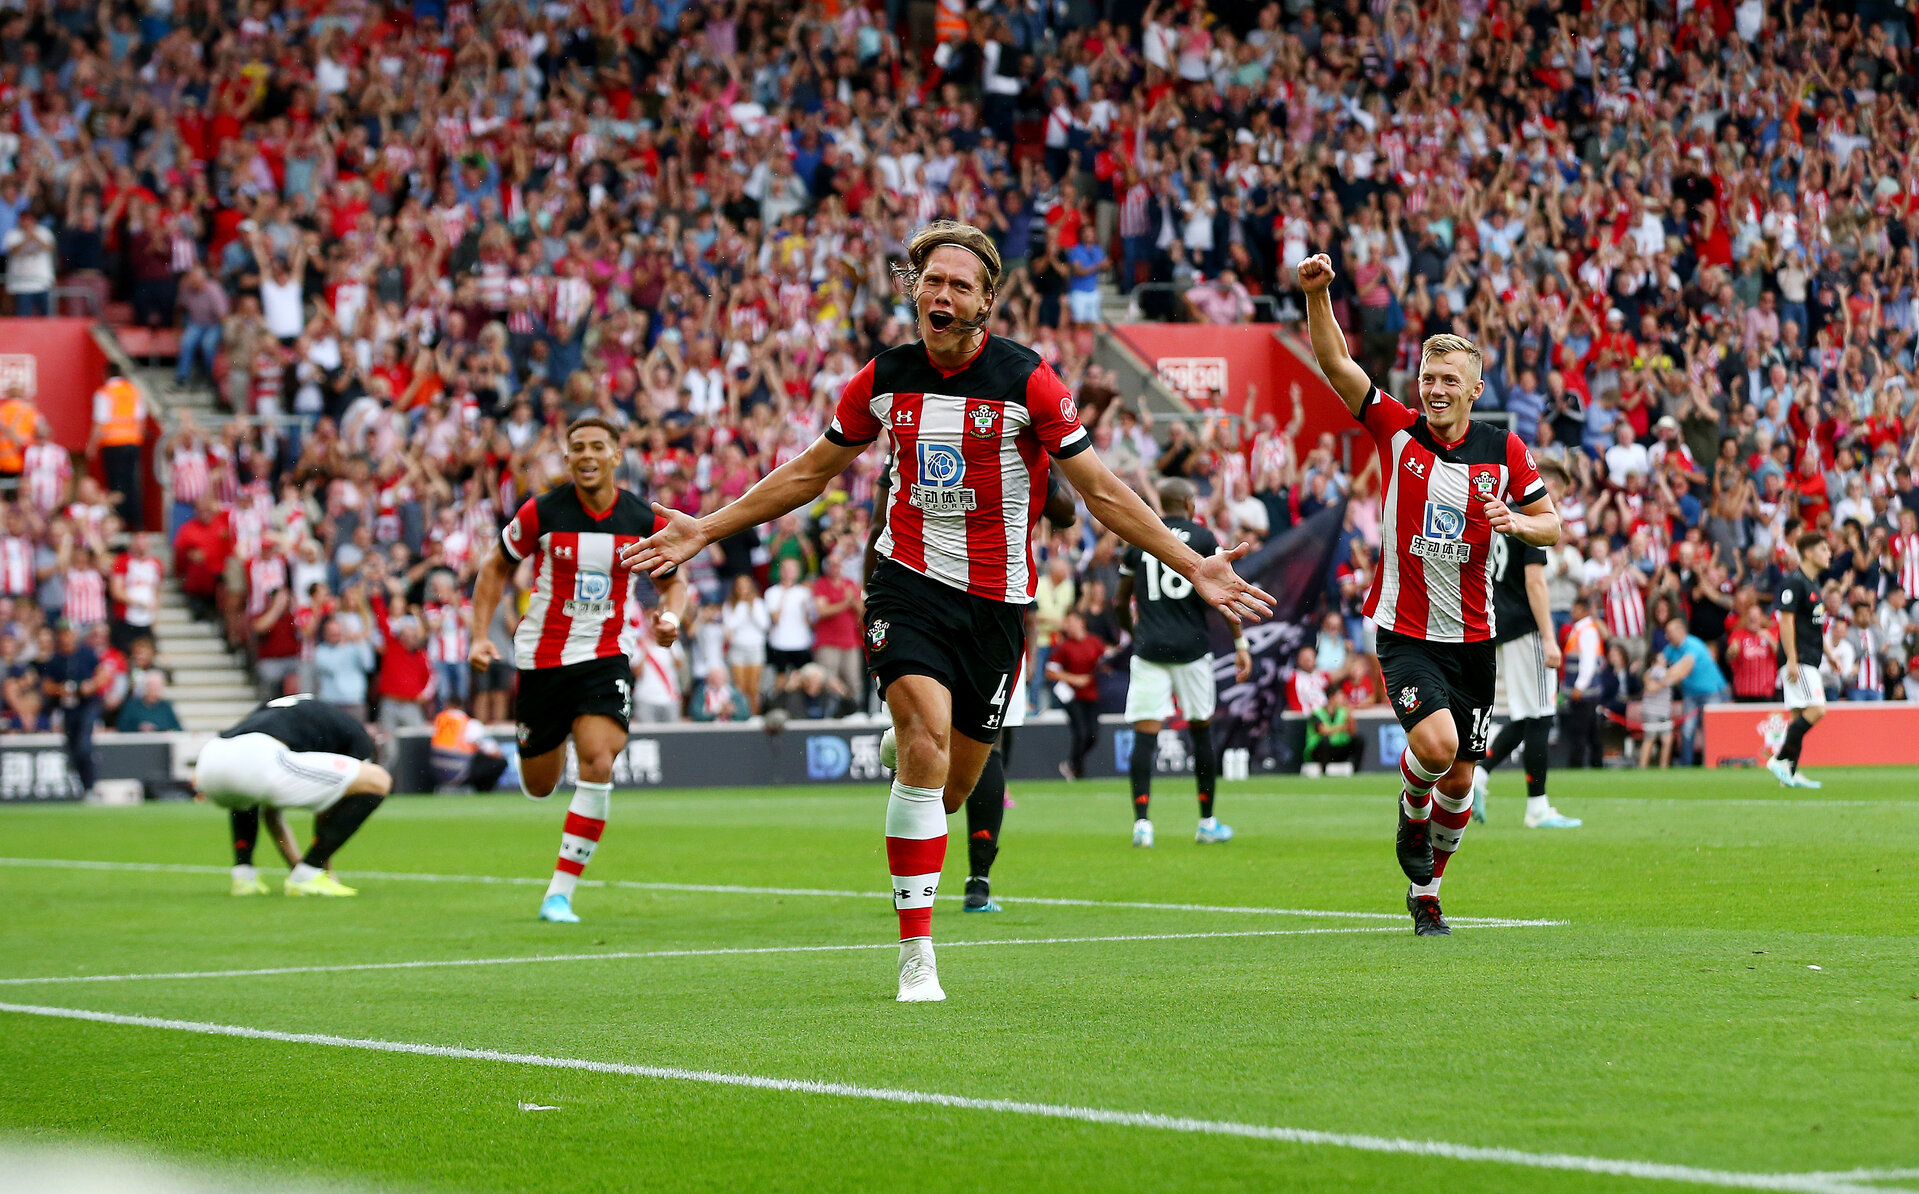 SOUTHAMPTON, ENGLAND - AUGUST 31: Jannik Vestergaard of Southampton celebrates after equalising during the Premier League match between Southampton FC and Manchester United at St Mary's Stadium on August 31, 2019 in Southampton, United Kingdom. (Photo by Matt Watson/Southampton FC via Getty Images)